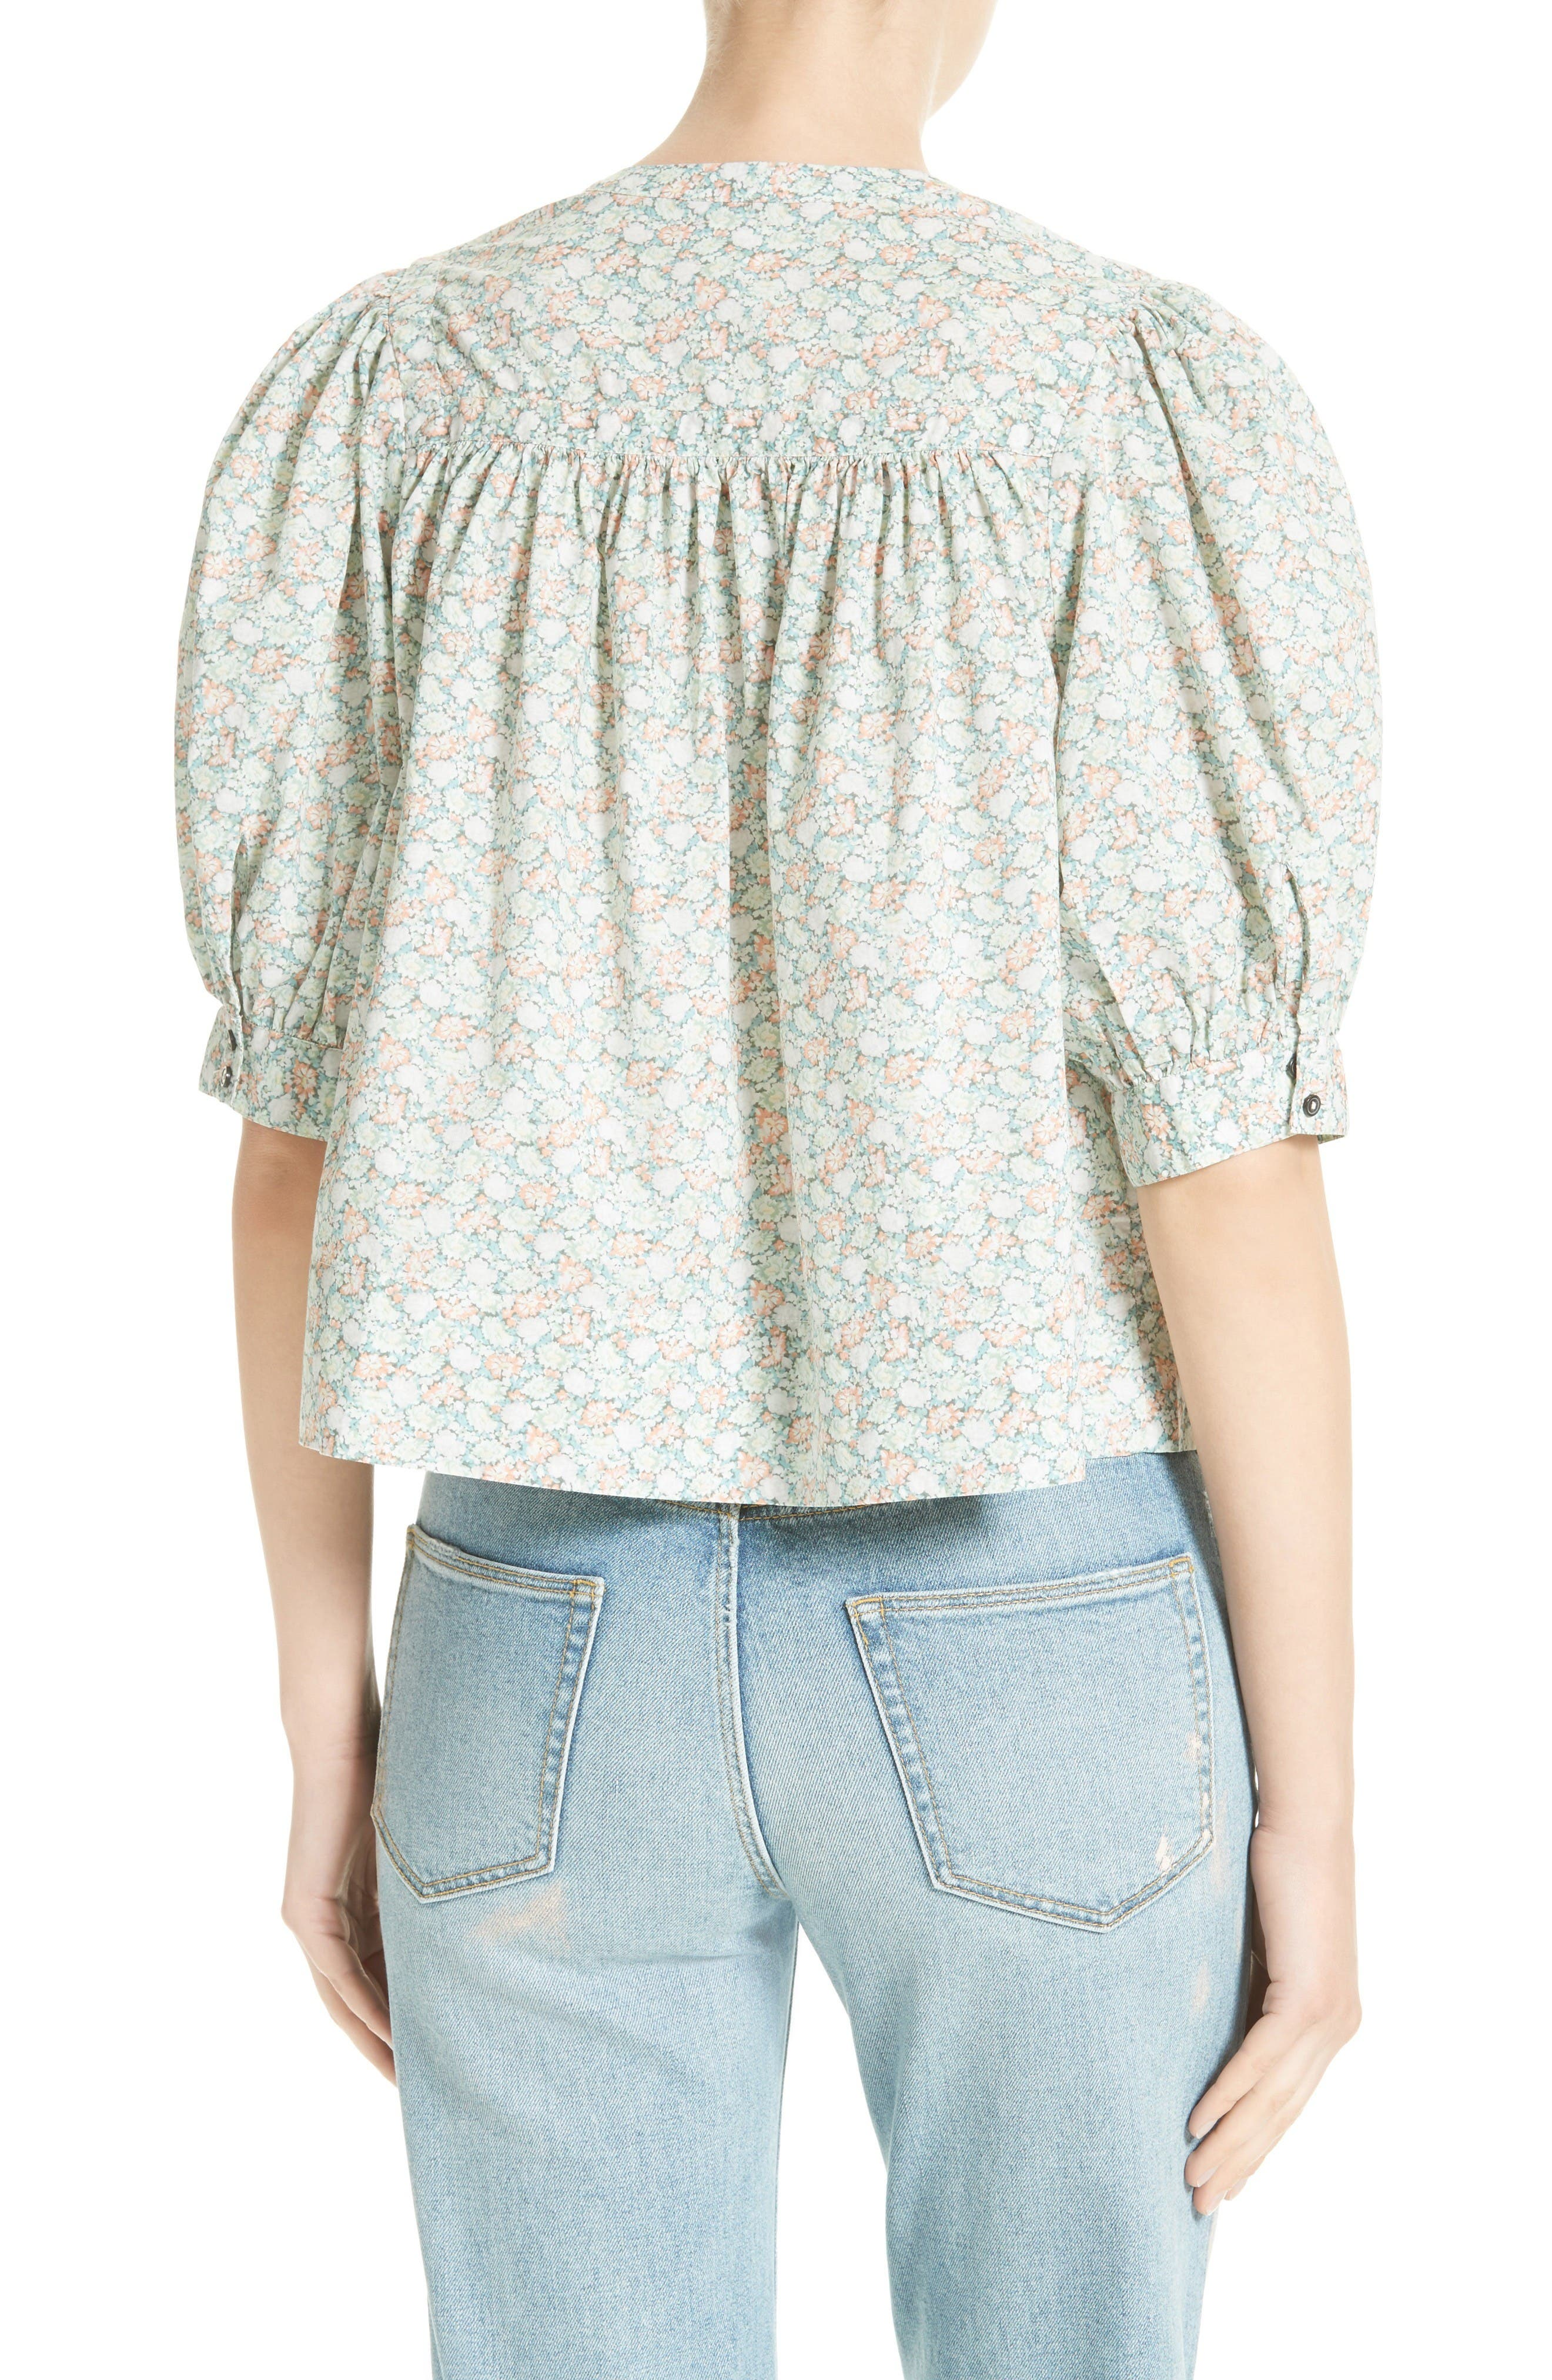 Alternate Image 2  - La Vie Rebecca Taylor Adelie Crop Blouse